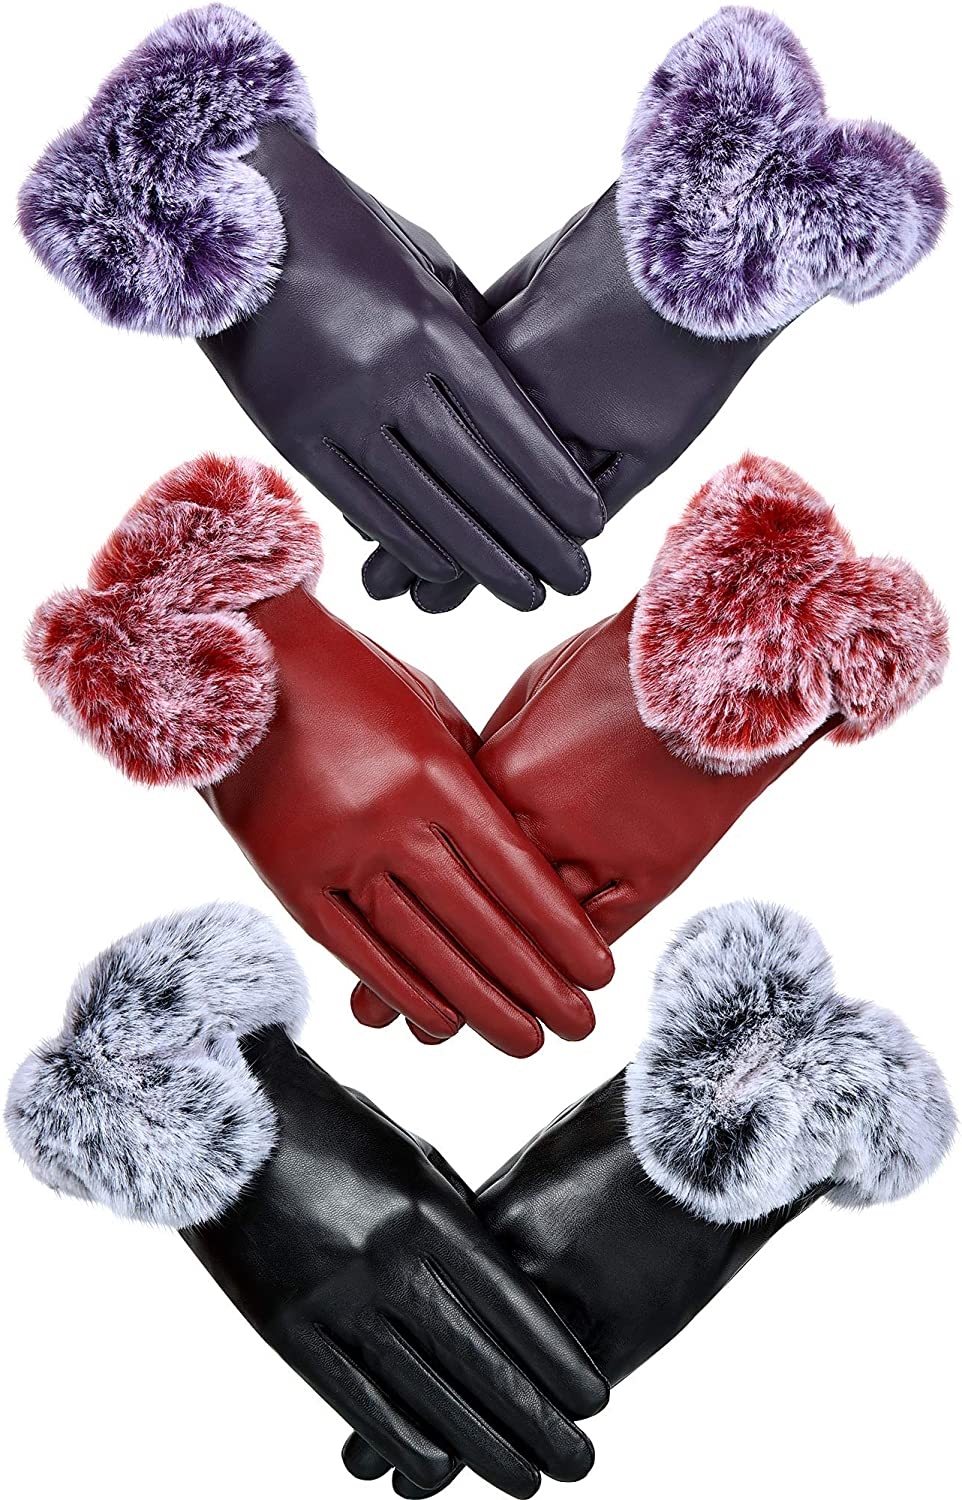 Women's Winter Gloves Winter PU Leather Gloves for Women Winter Supplies (Color Set 3, 3)